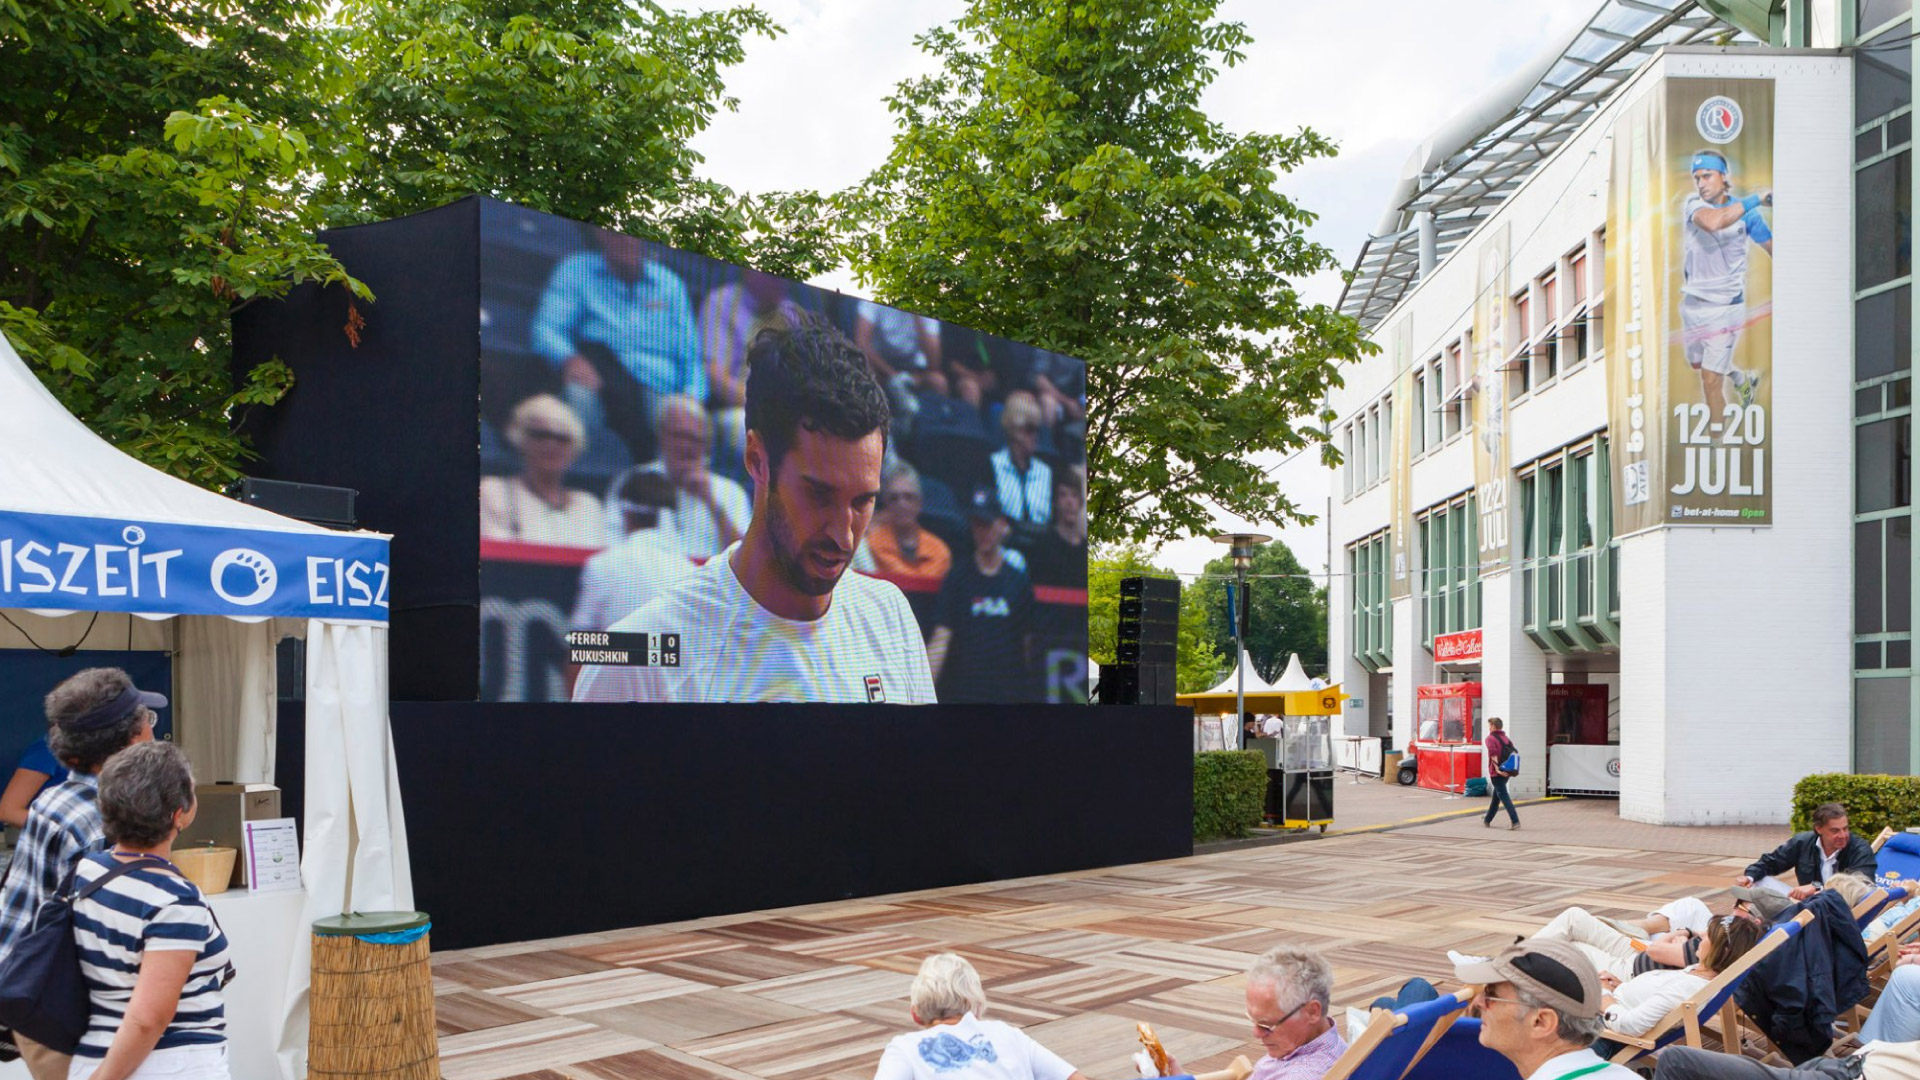 Outdoor LED Screen at Tennis tournament Rothenbaum